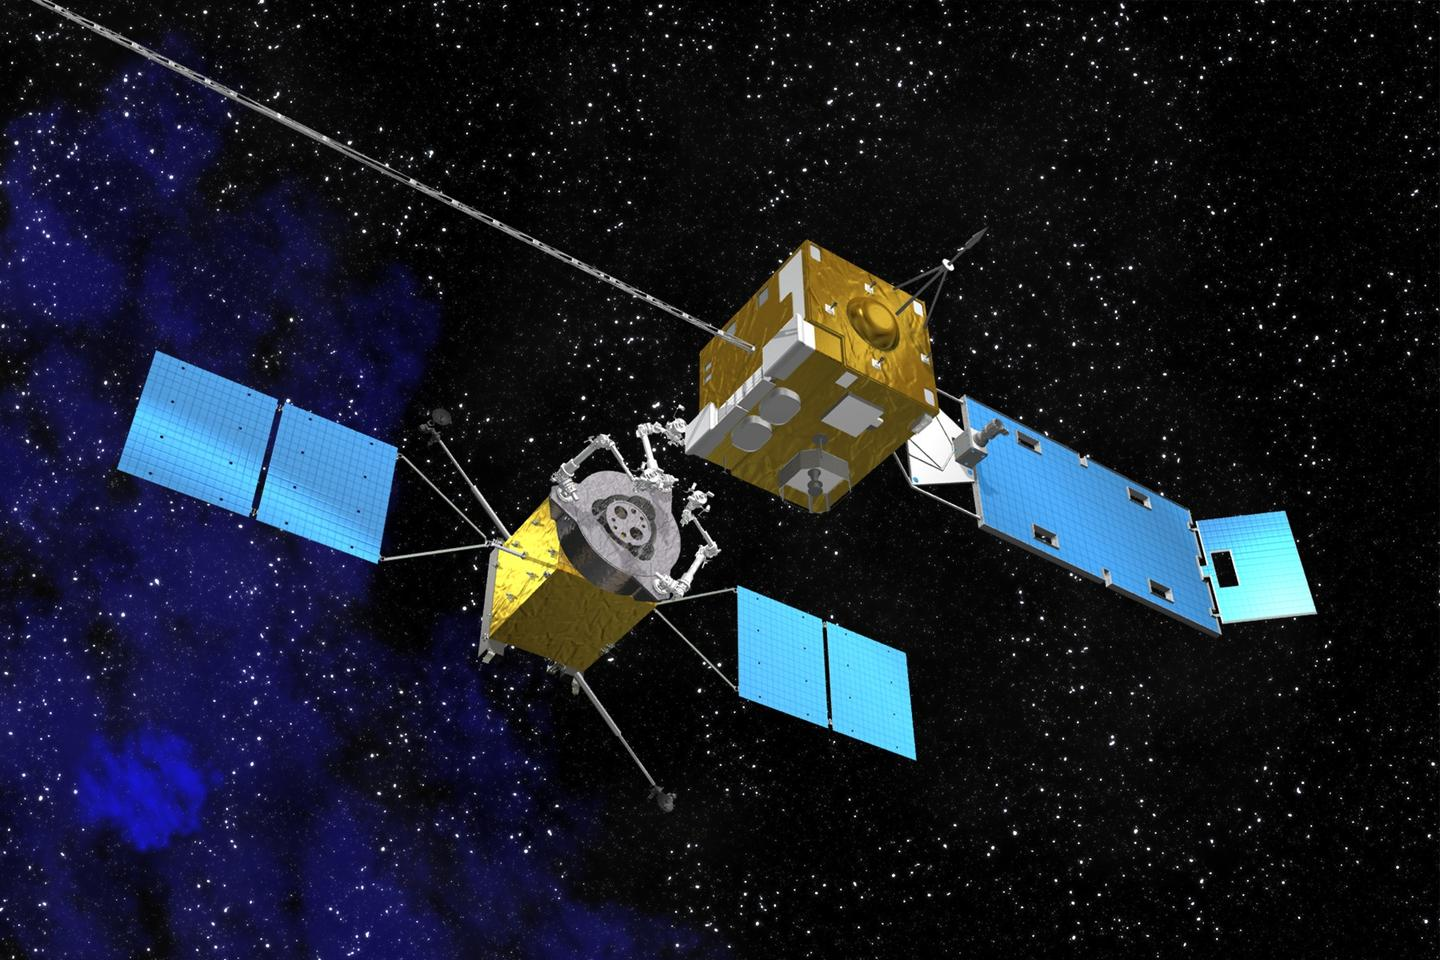 Artist's concept of a servicing satellite (Image: NASA)